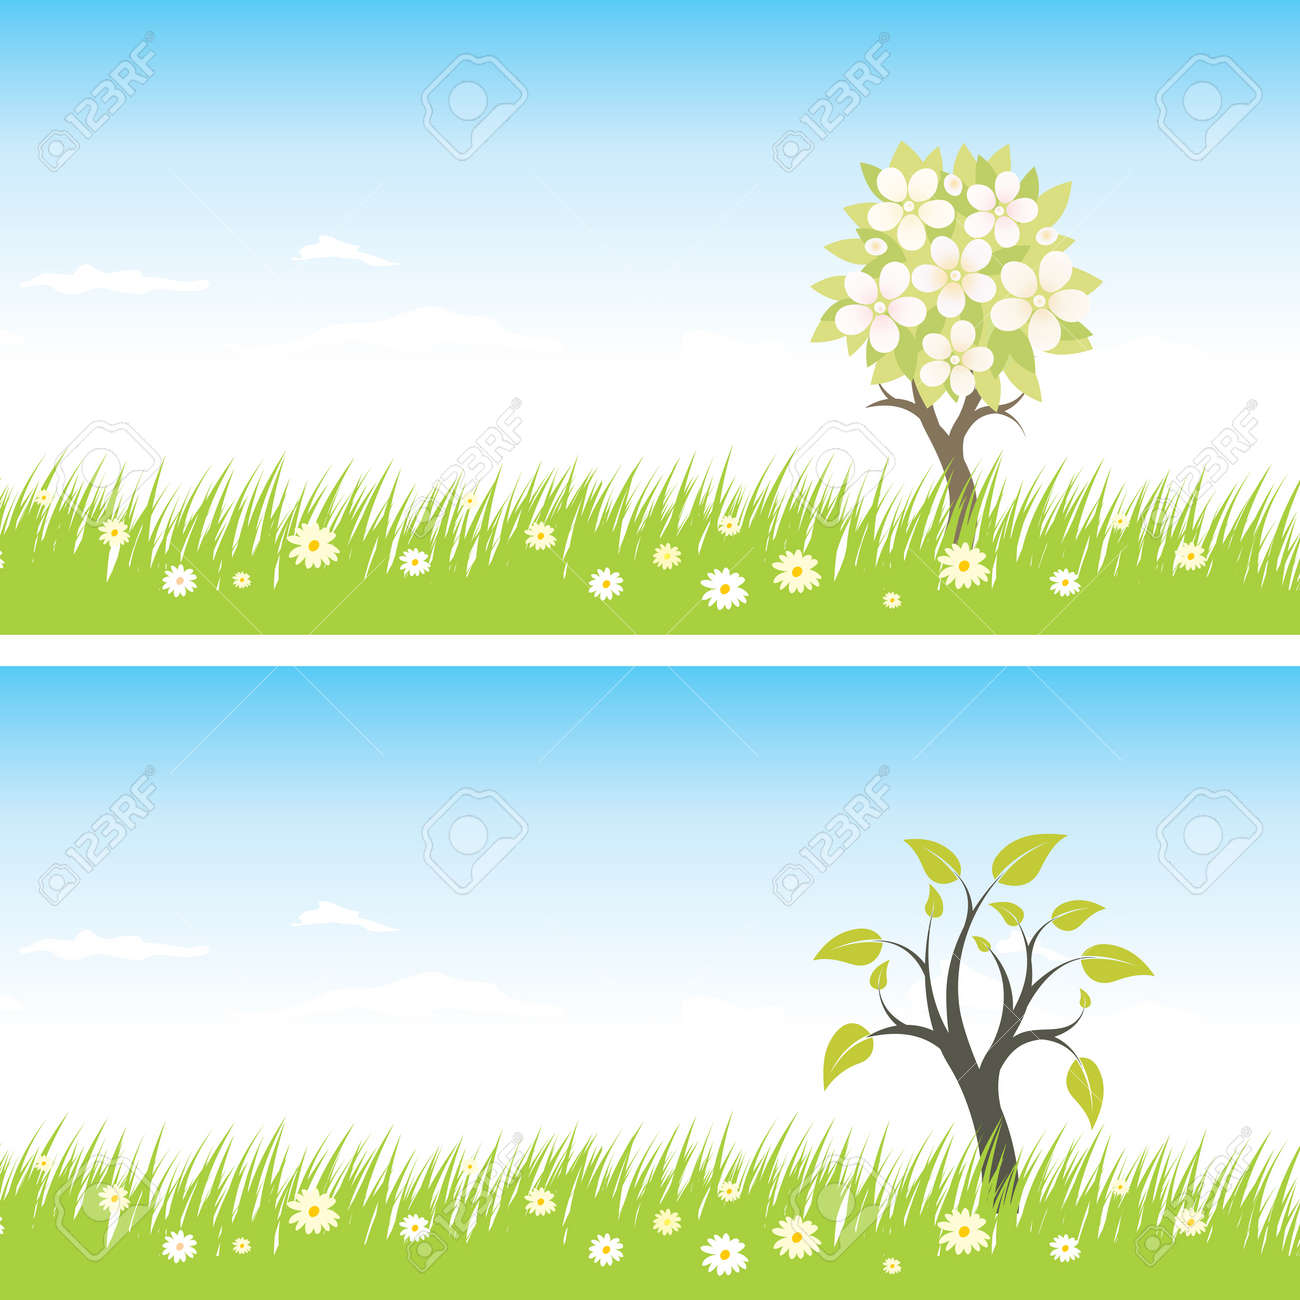 spring backgrounds with tree Stock Vector - 6901961